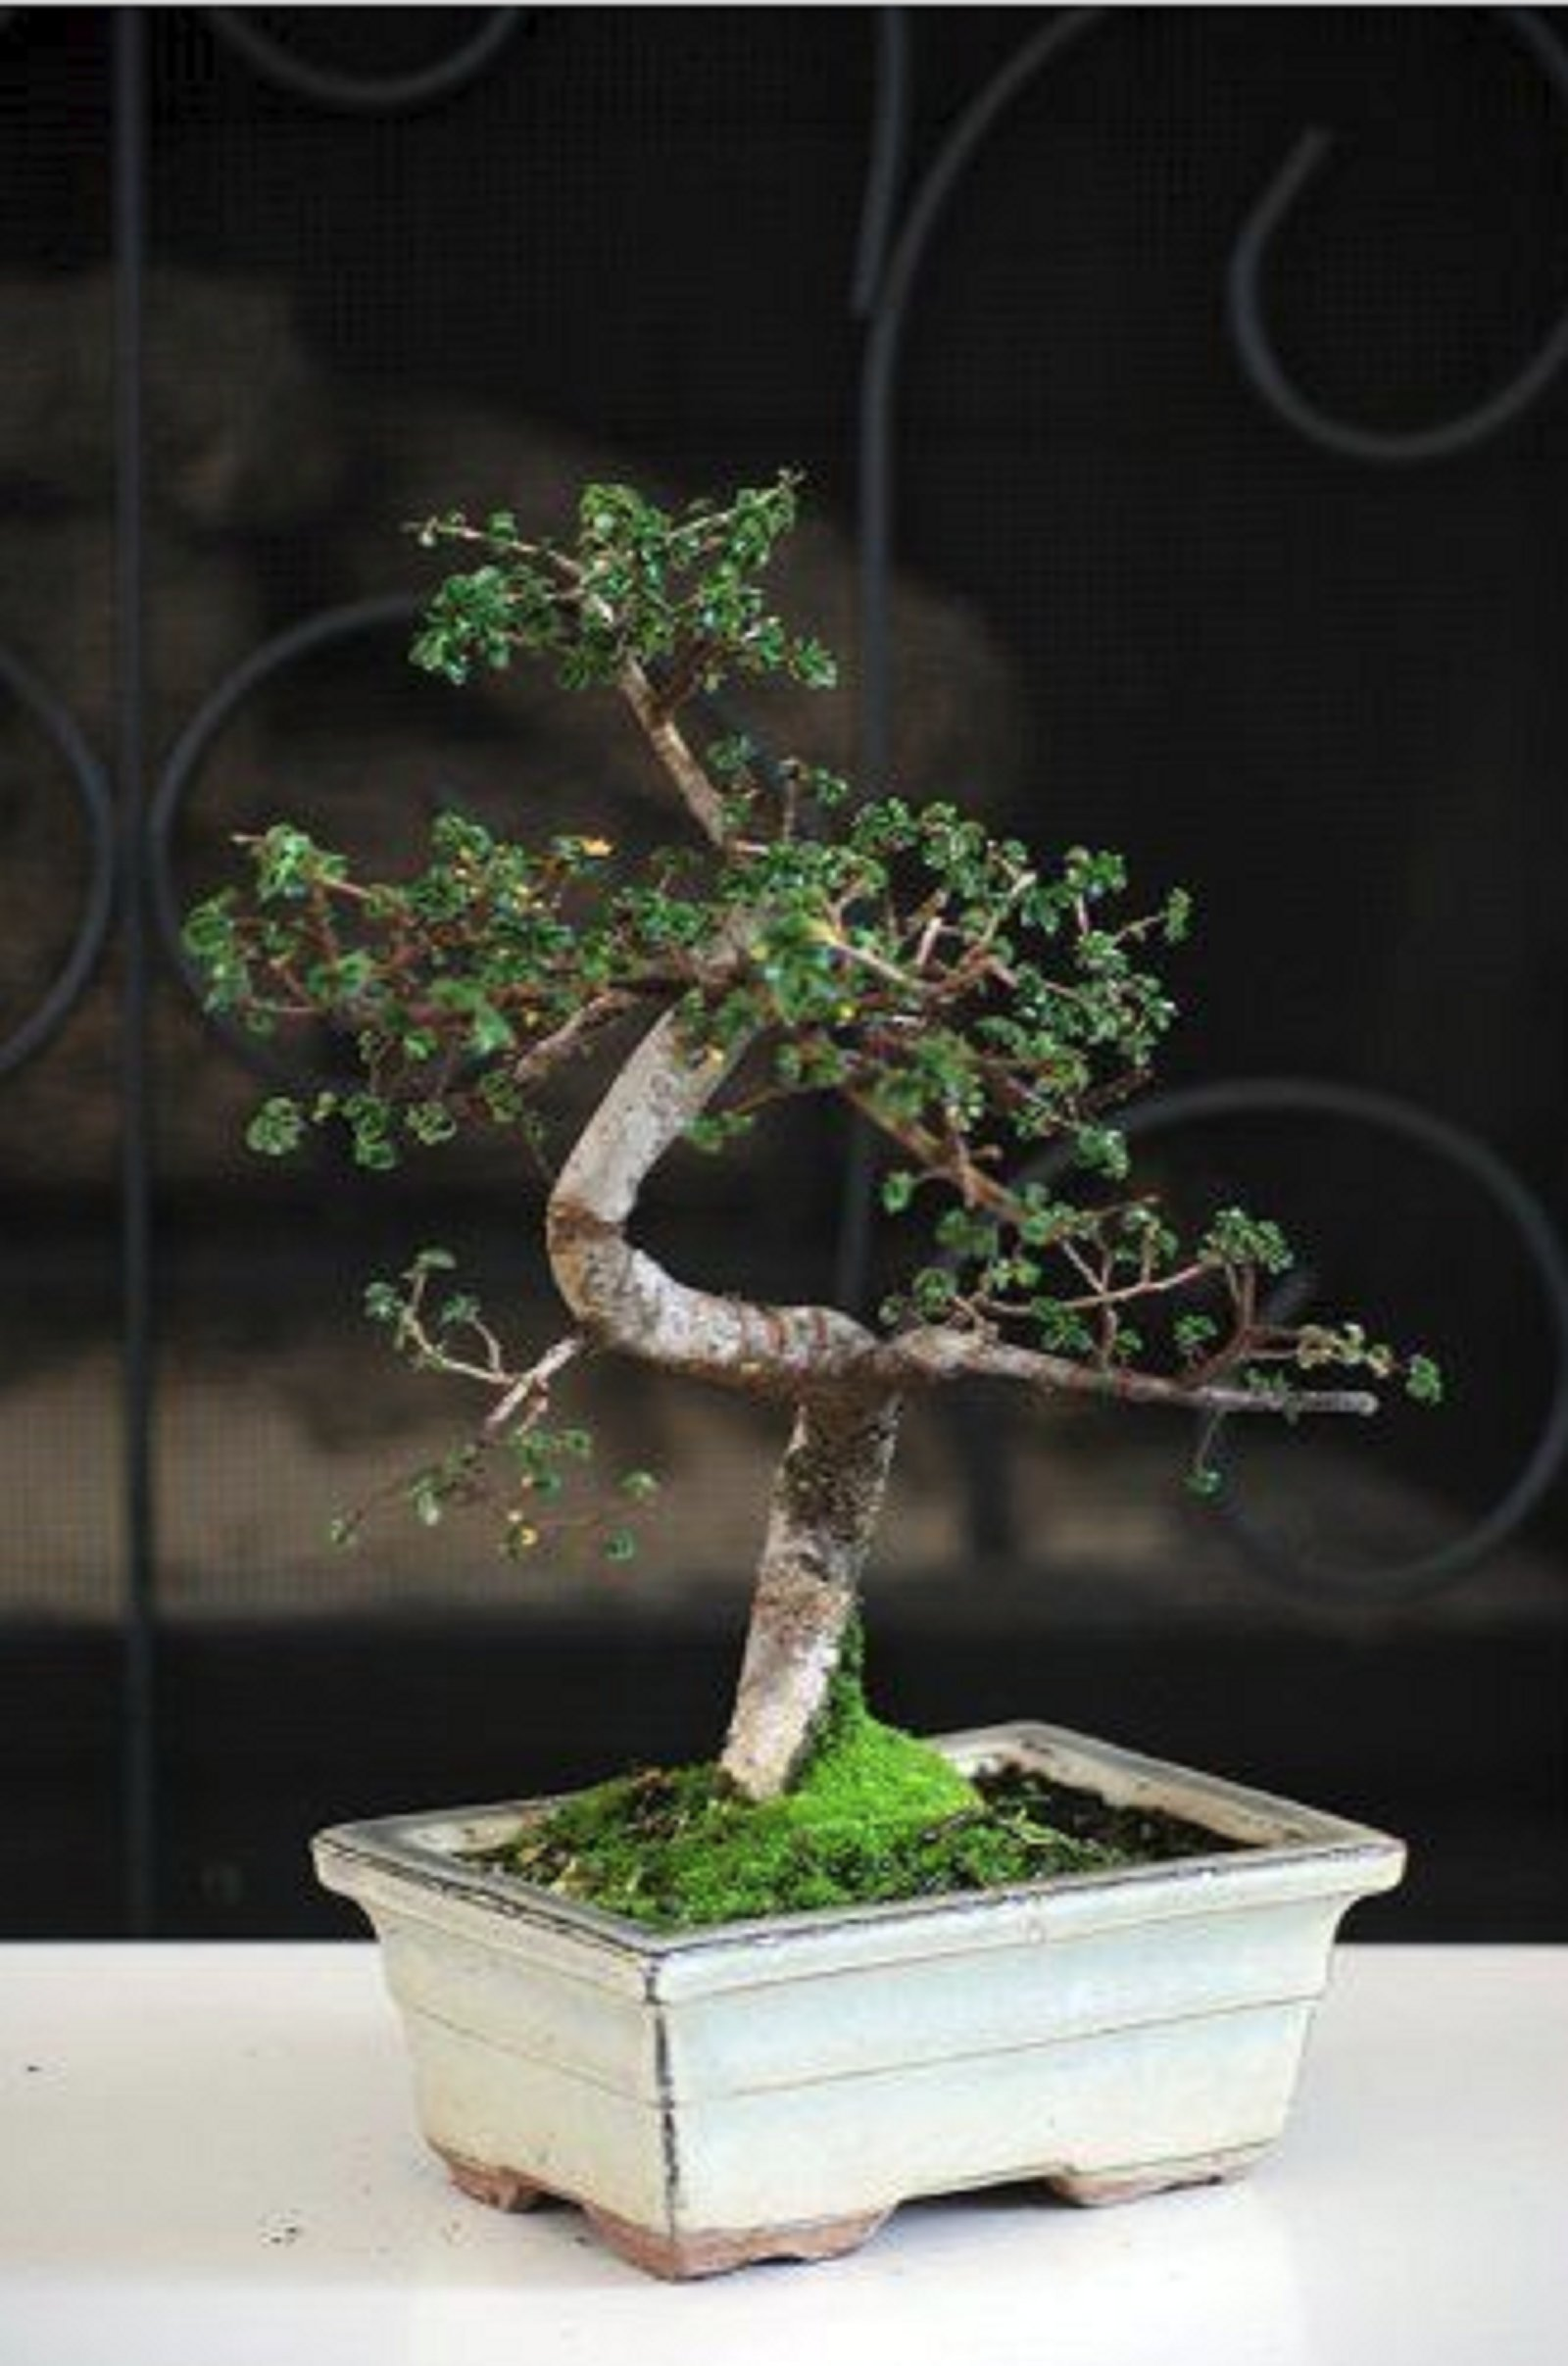 Hot Sale! Chinese Elm Bonsai Tree 10 years old specimen, 10'' - 12'' tall Mature Bonsai